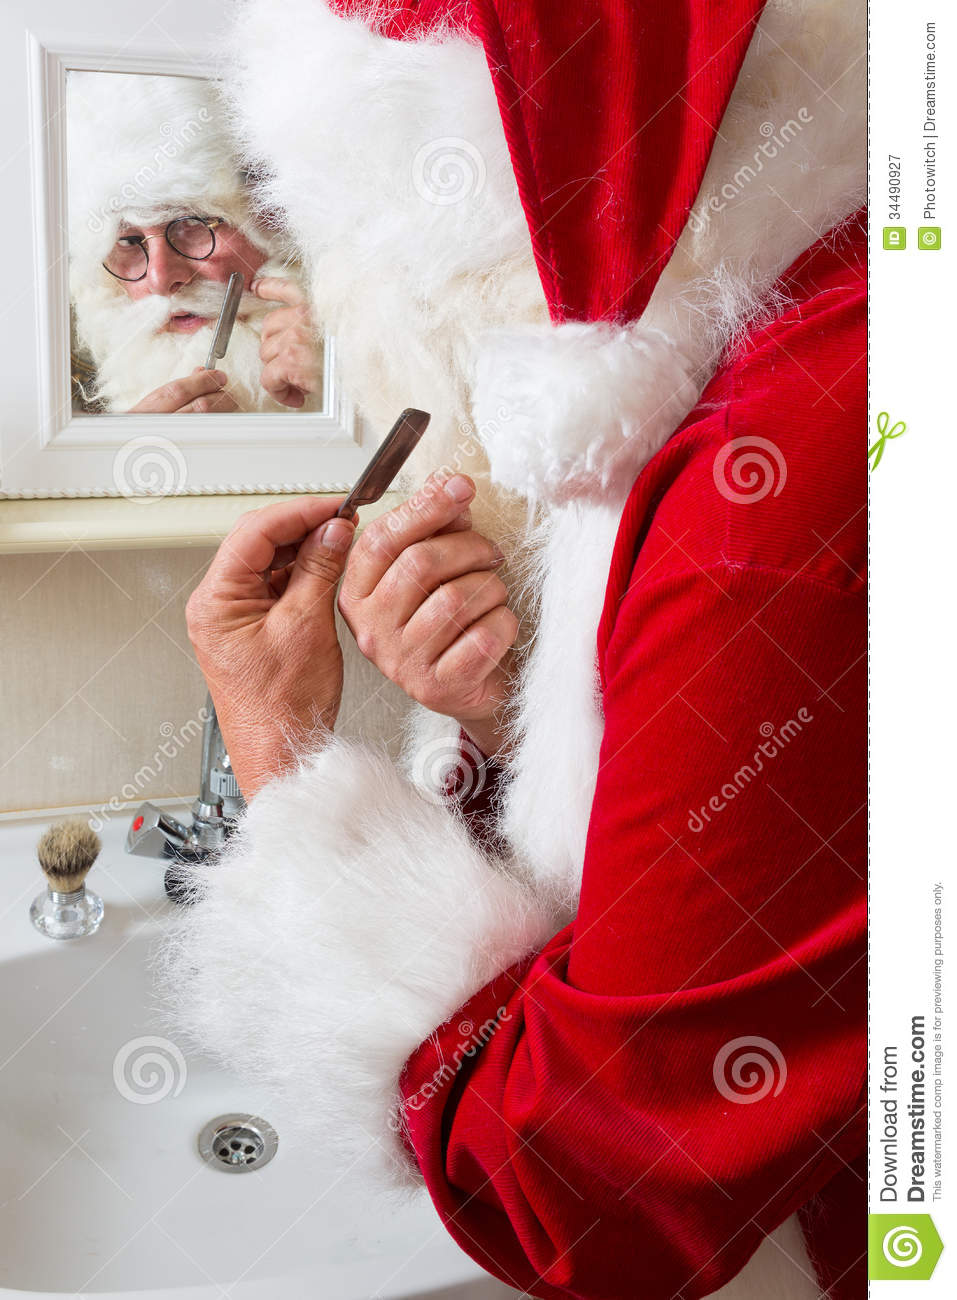 Santa Claus Is Shaving Royalty Free Stock Photography   Image